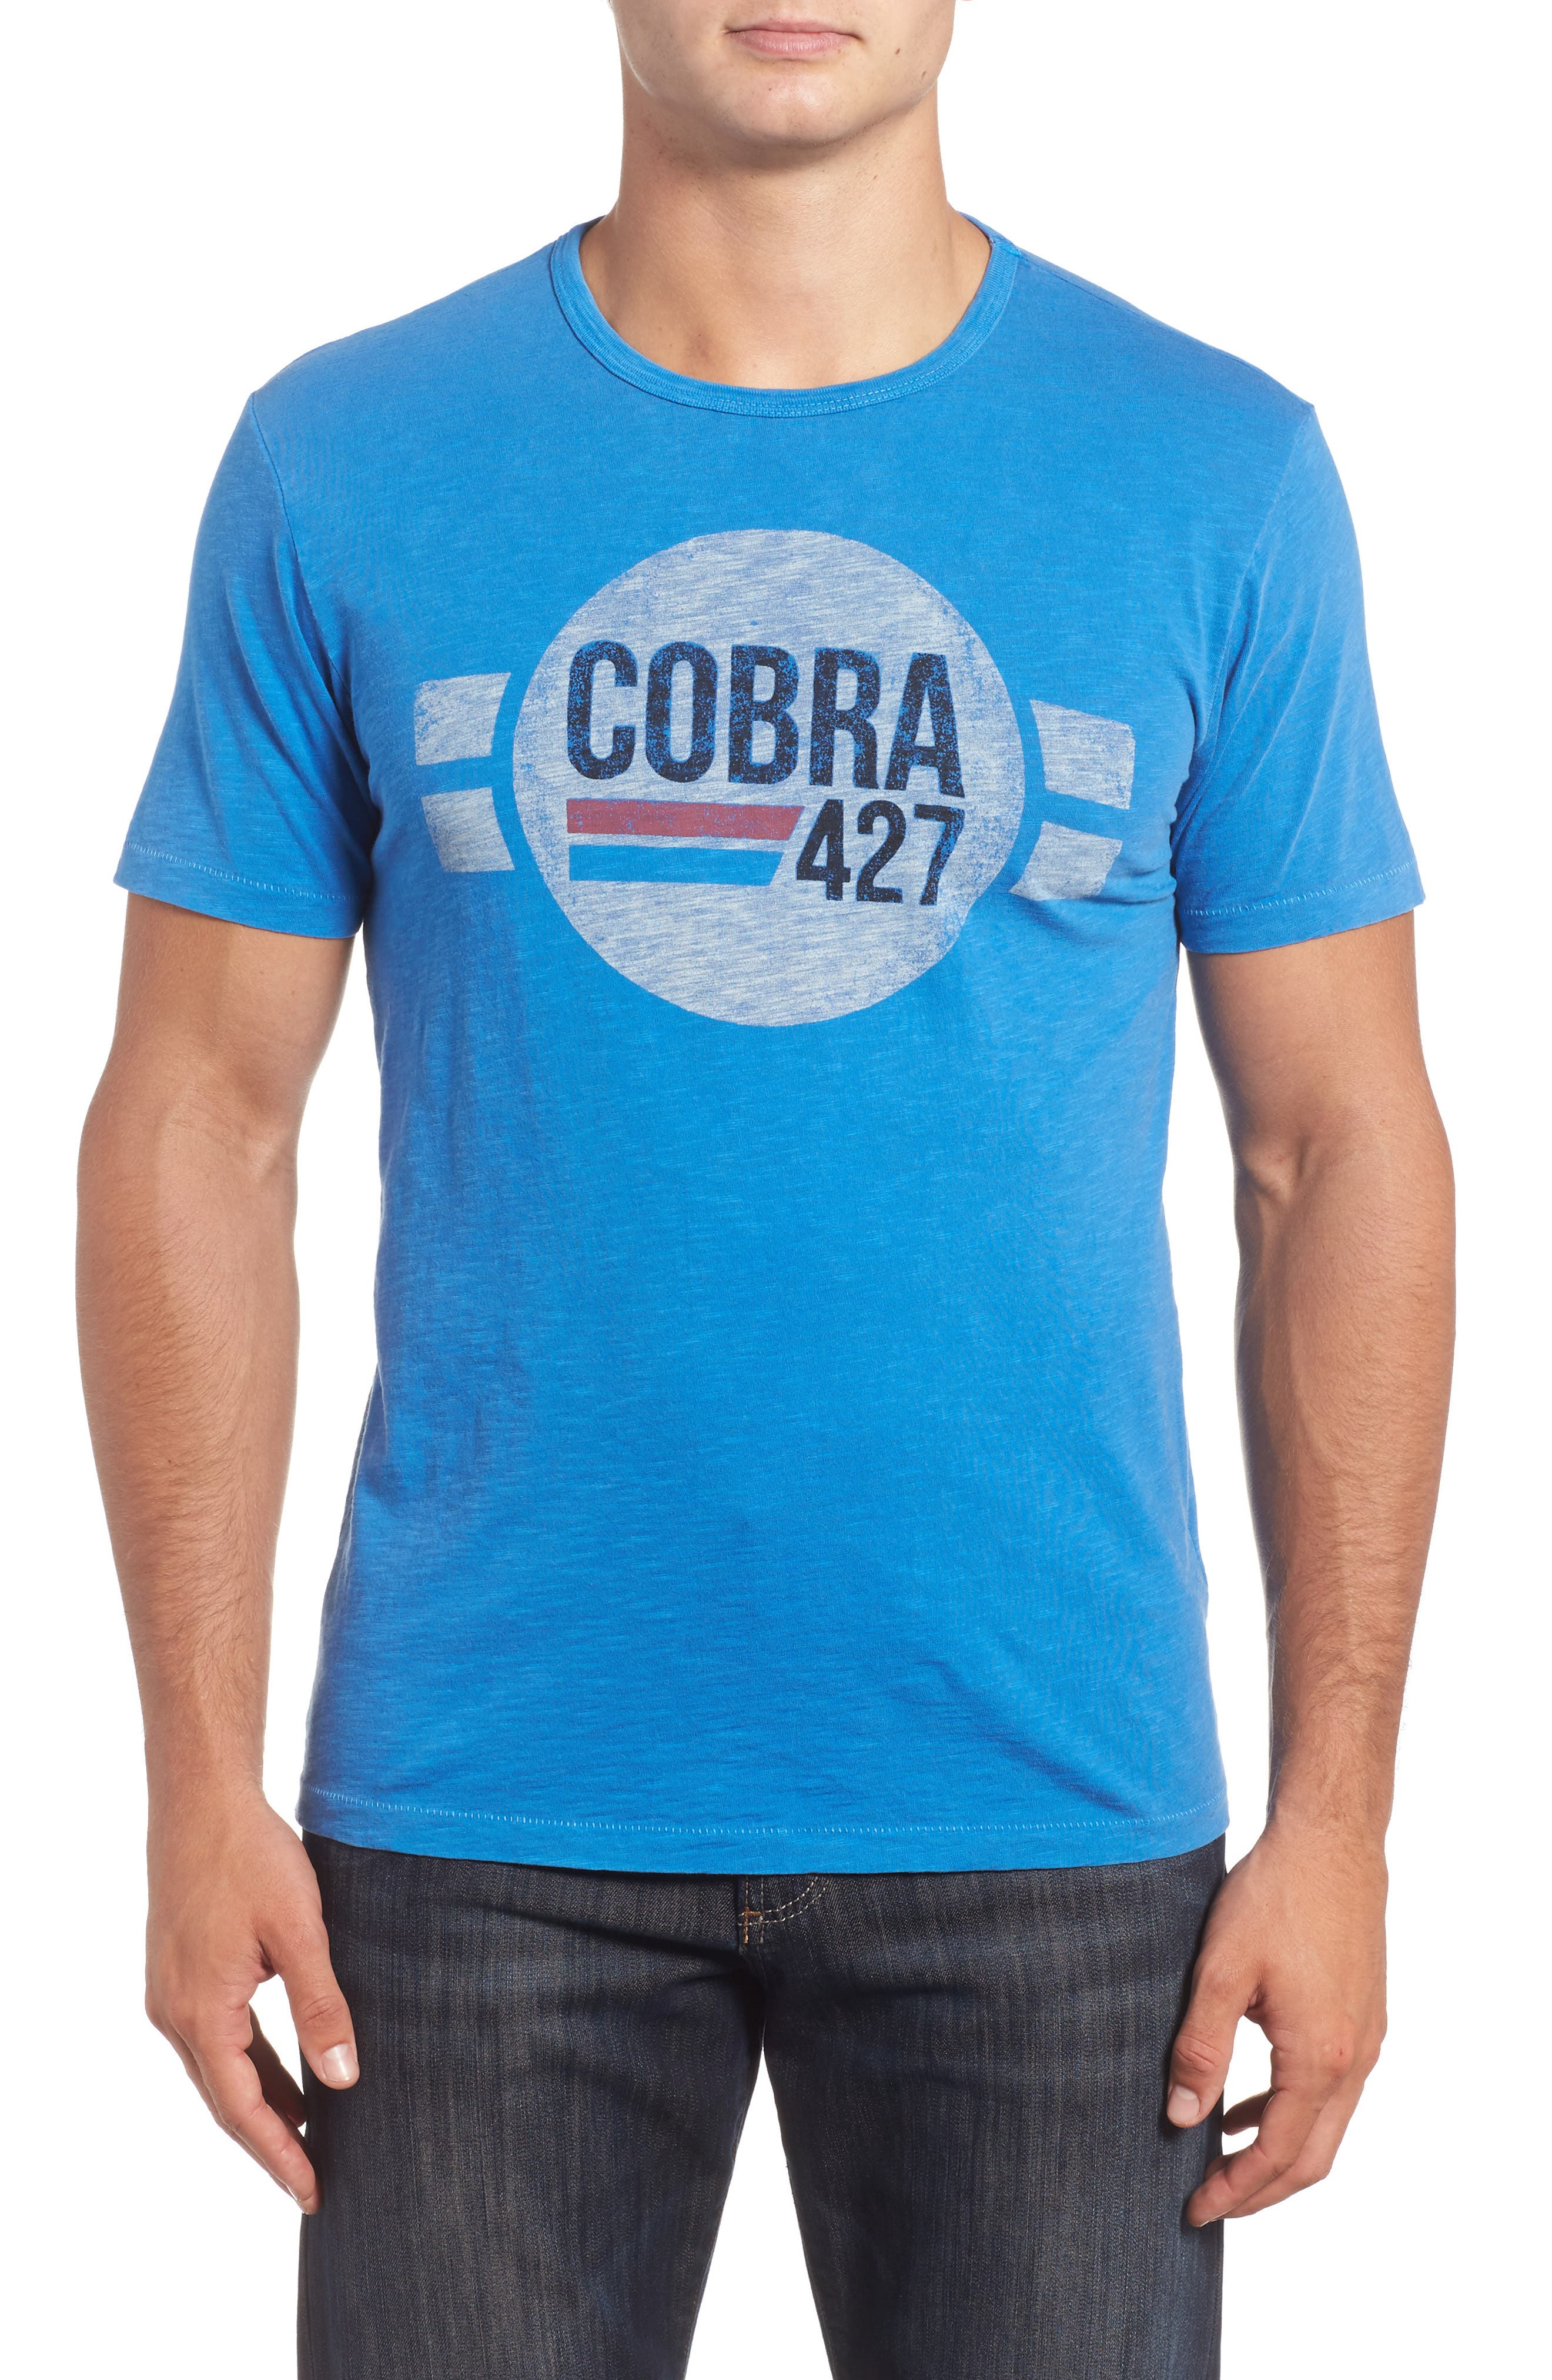 Lucky Brand Ford Cobra 427 Graphic T-Shirt